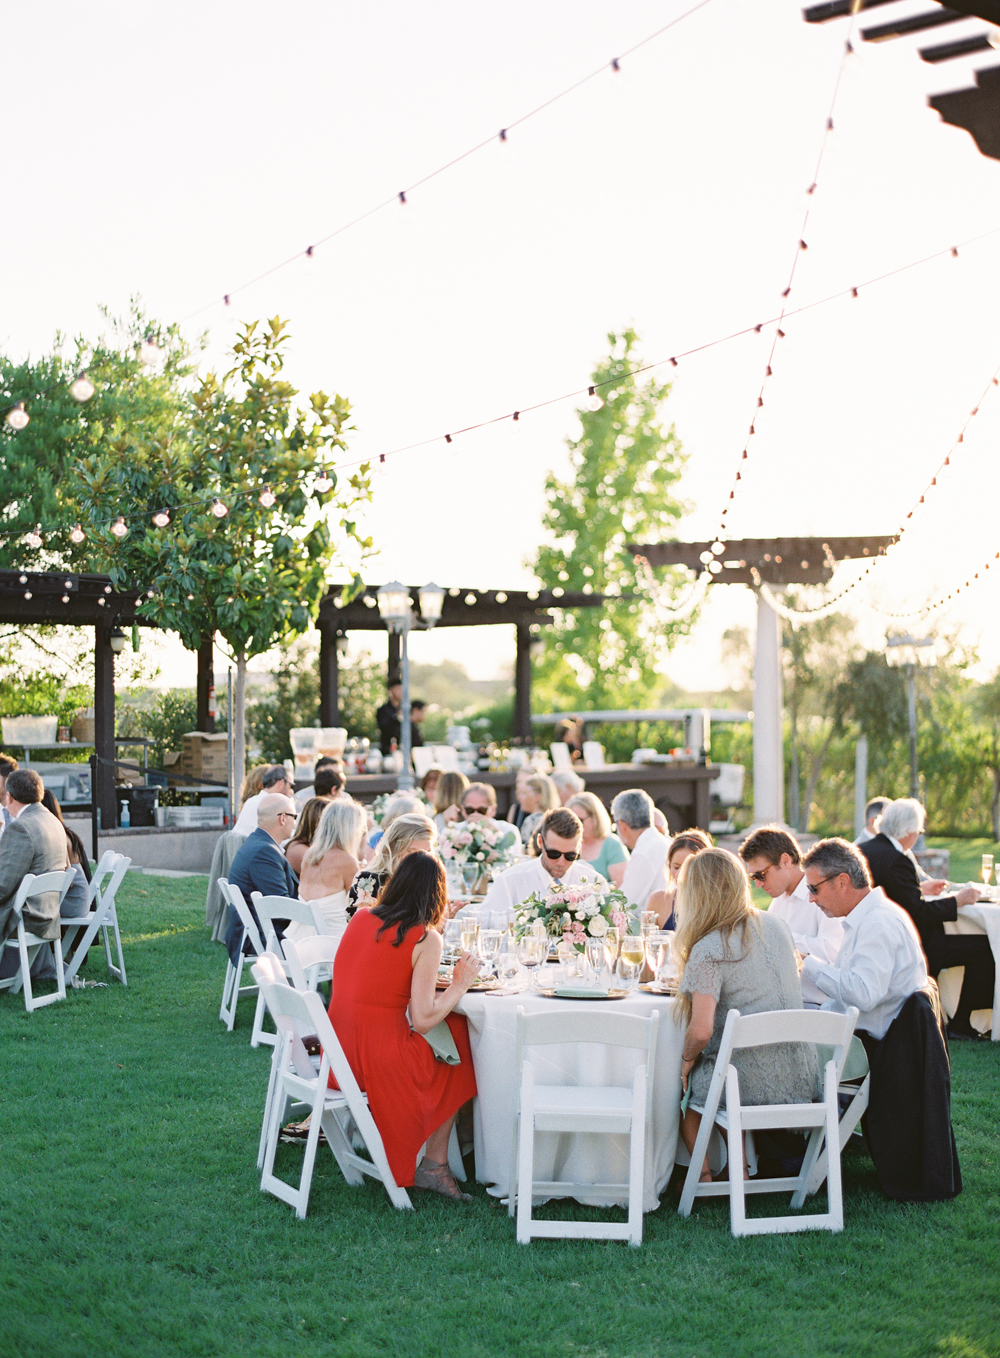 Mount Palomar Winery Wedding | Blush and Lavender | San Diego wedding photographer | Temecula wedding photographer | Southern California film photographer | Whiskers and Willow Photography